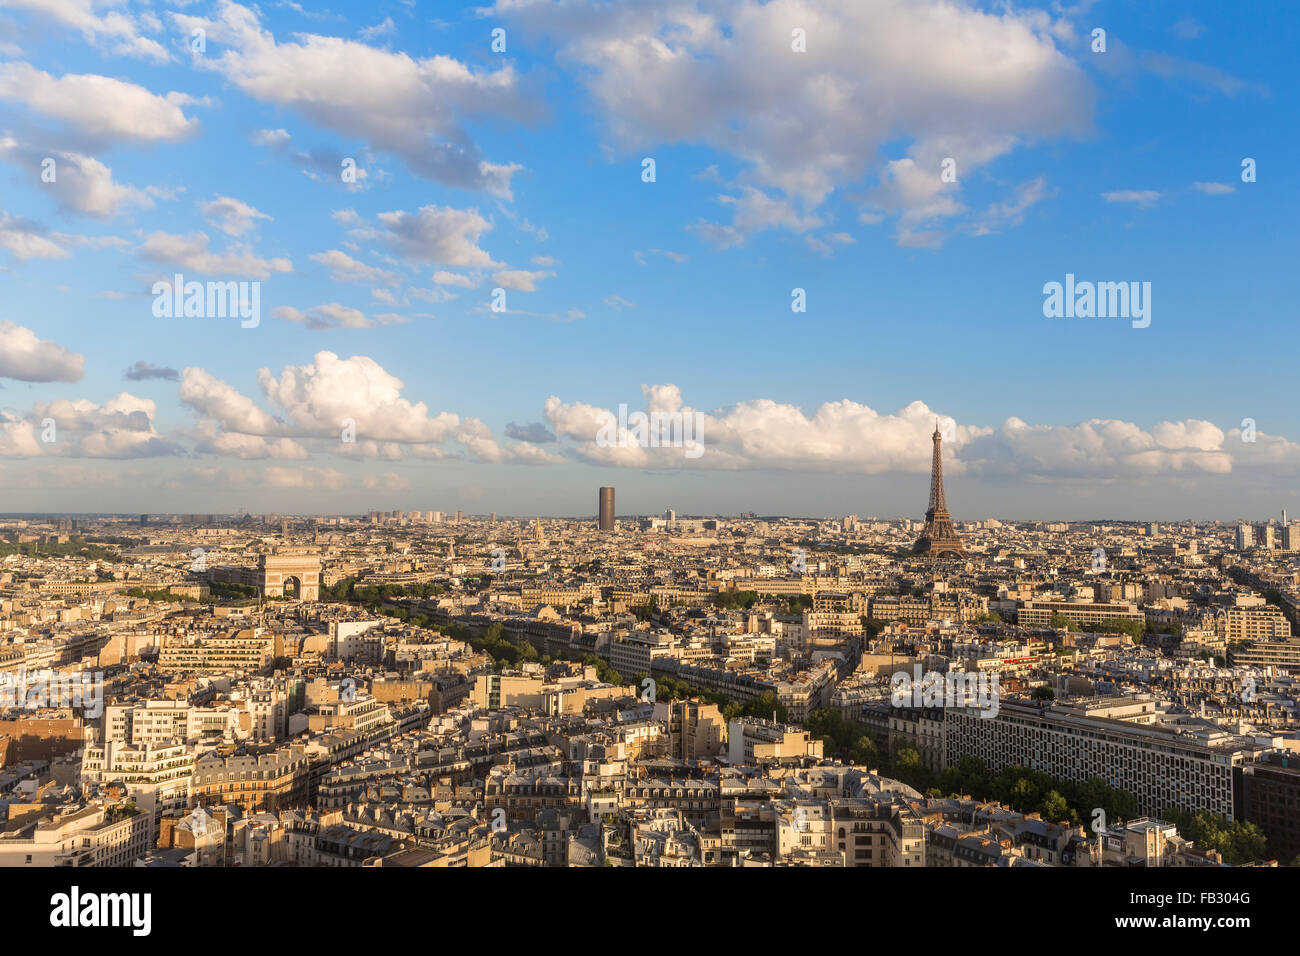 Arc de Triomphe and the Eiffel Tower, elevated city skyline viewed over rooftops, Paris, France, Europe - Stock Image